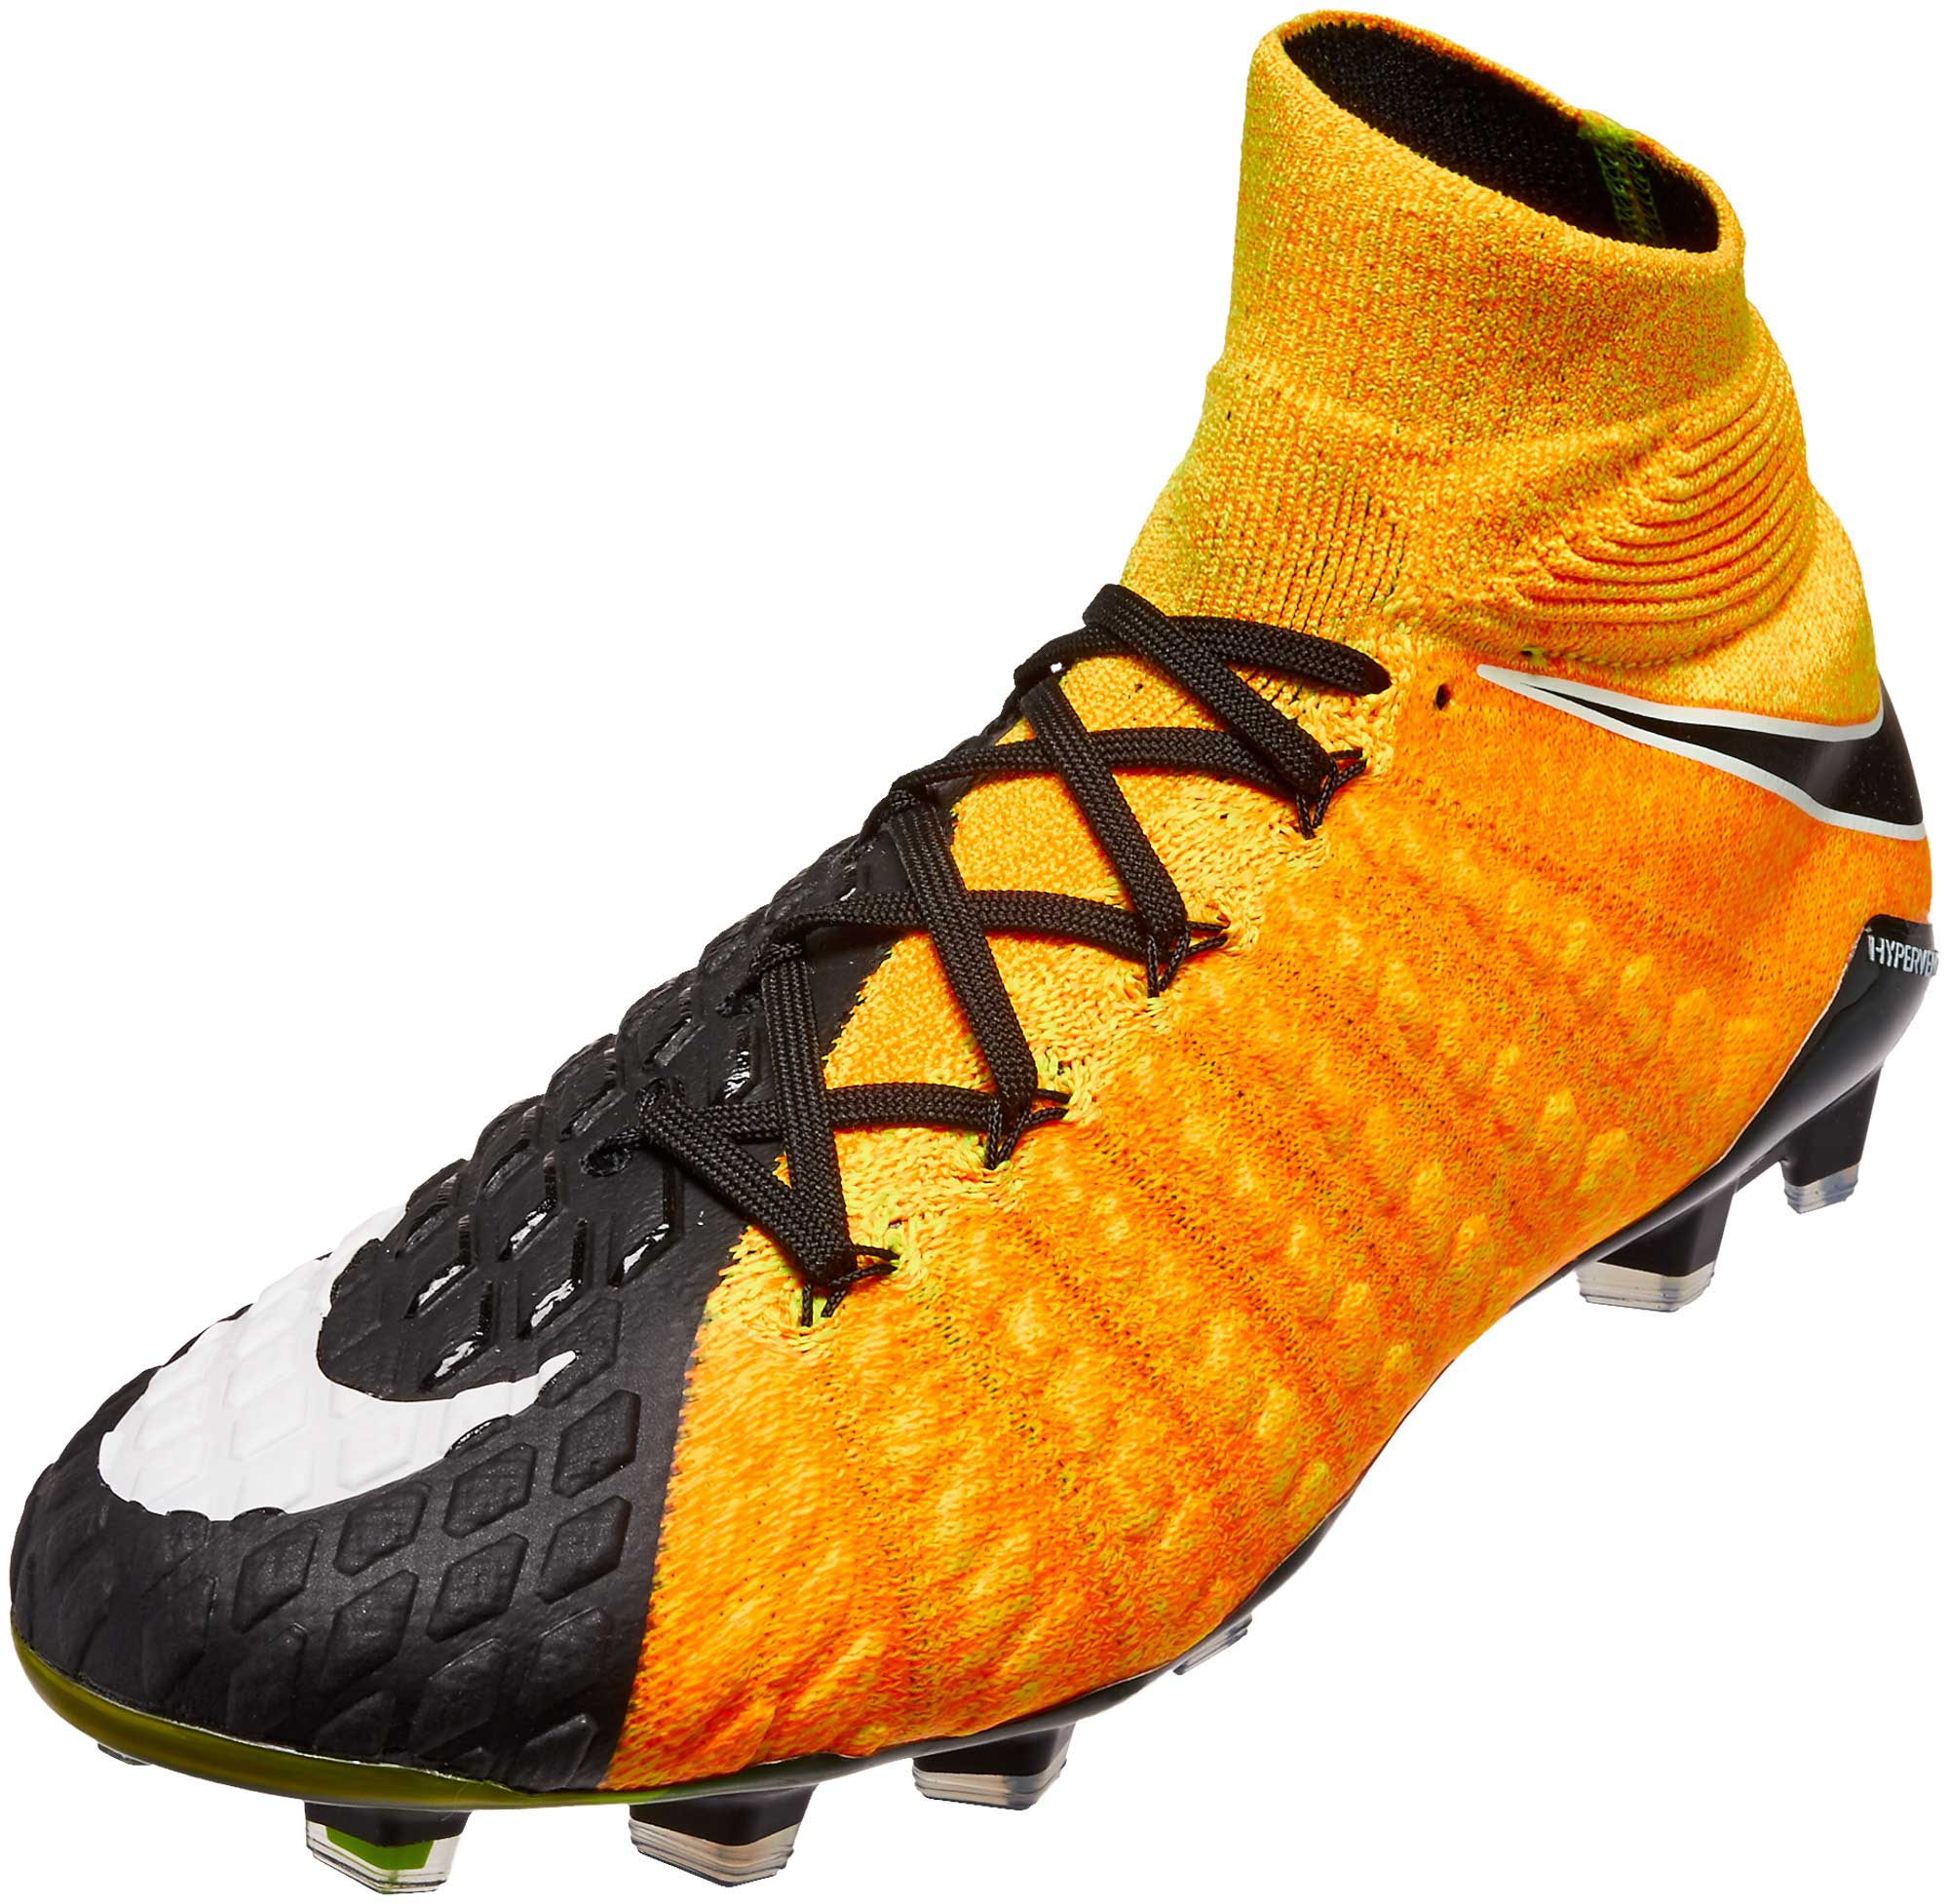 97441a5541b1 Nike Hypervenom Phantom III DF FG – Laser Orange/Black